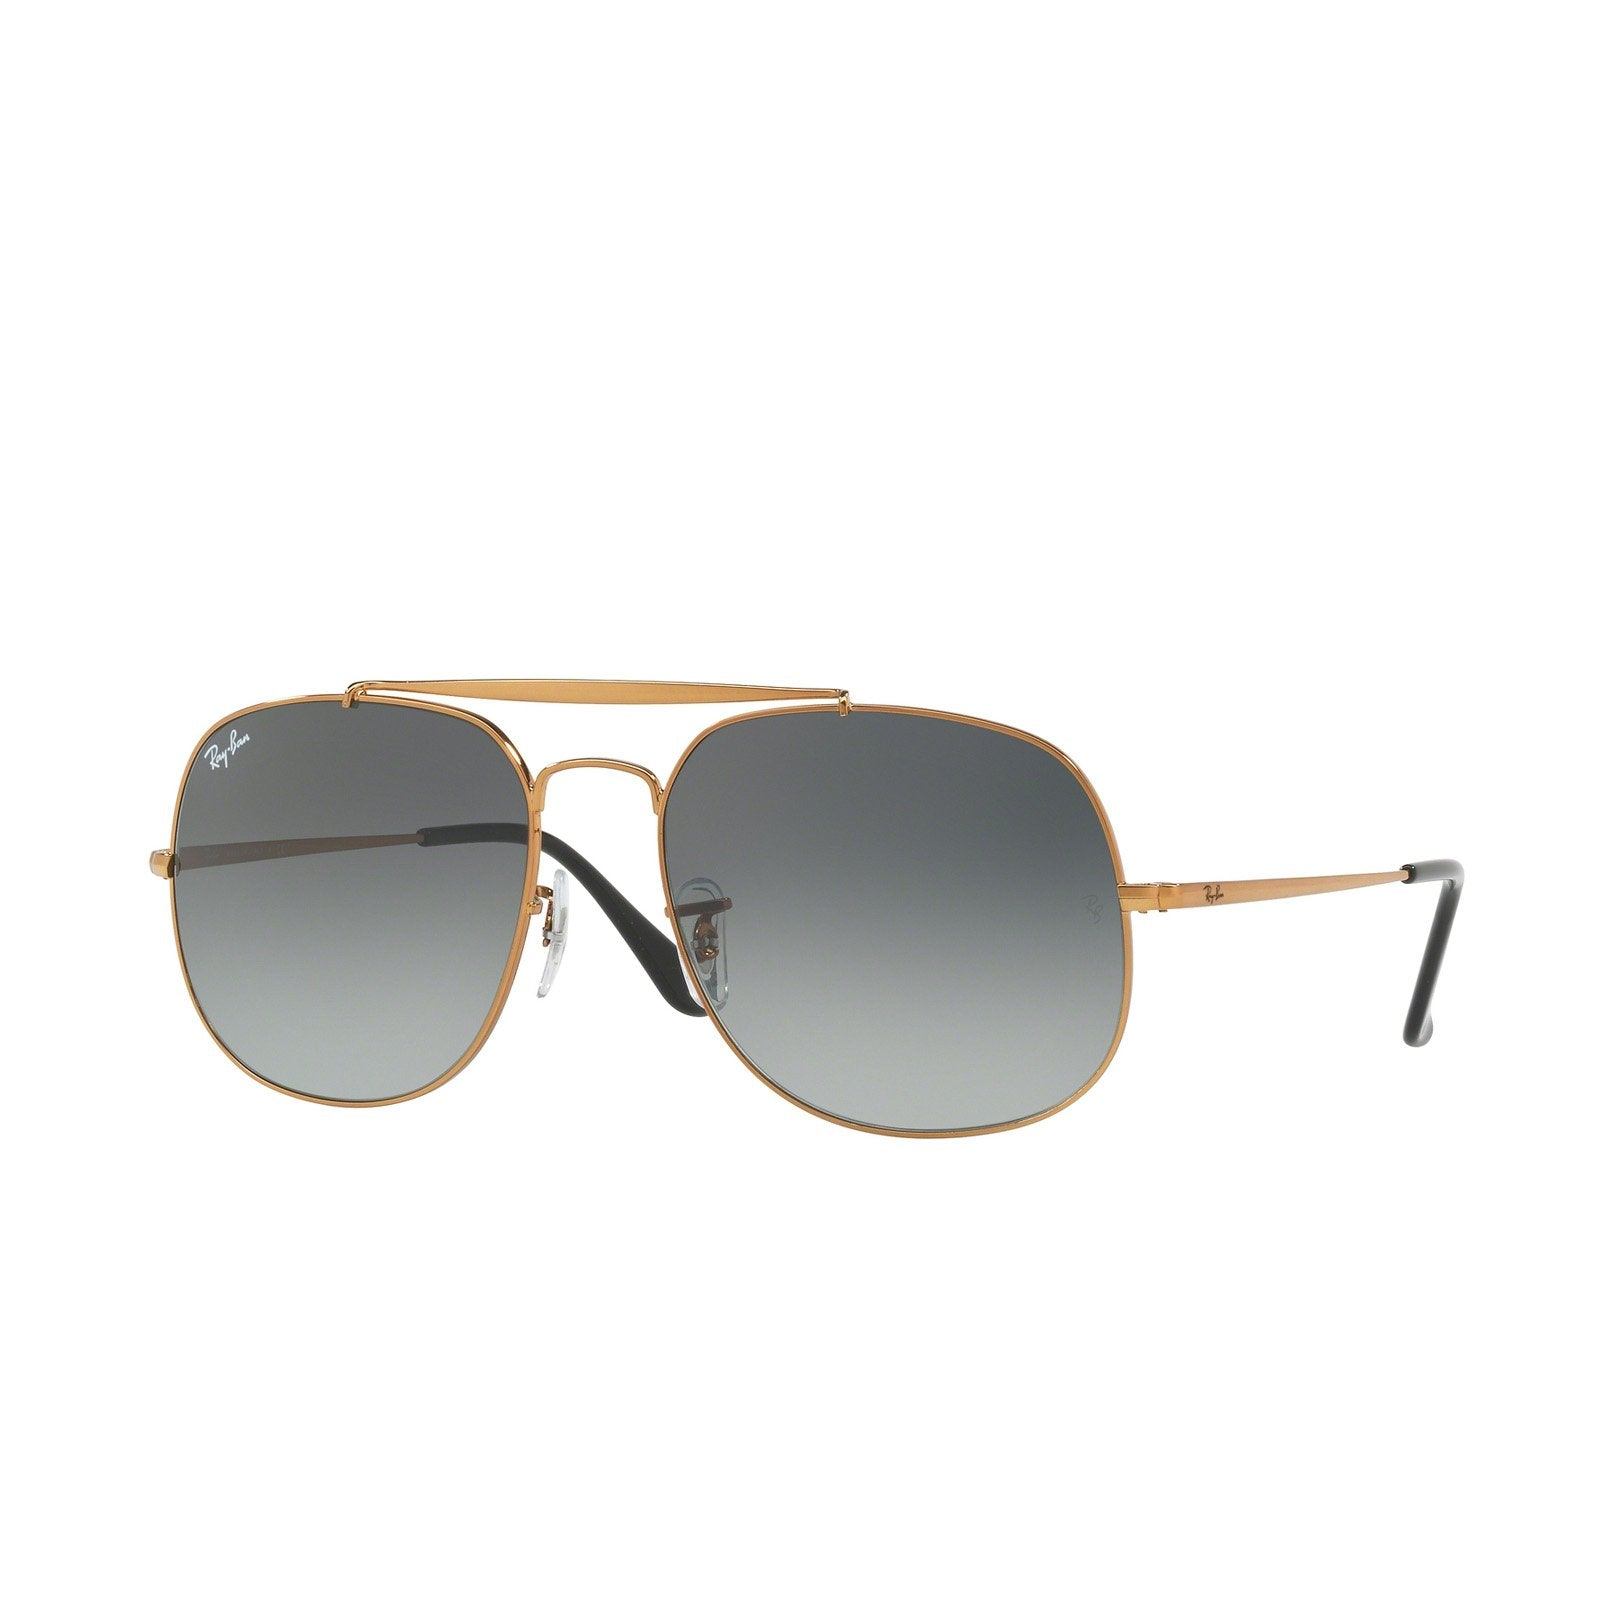 Ray-Ban RB3561 197/71 Sunglasses